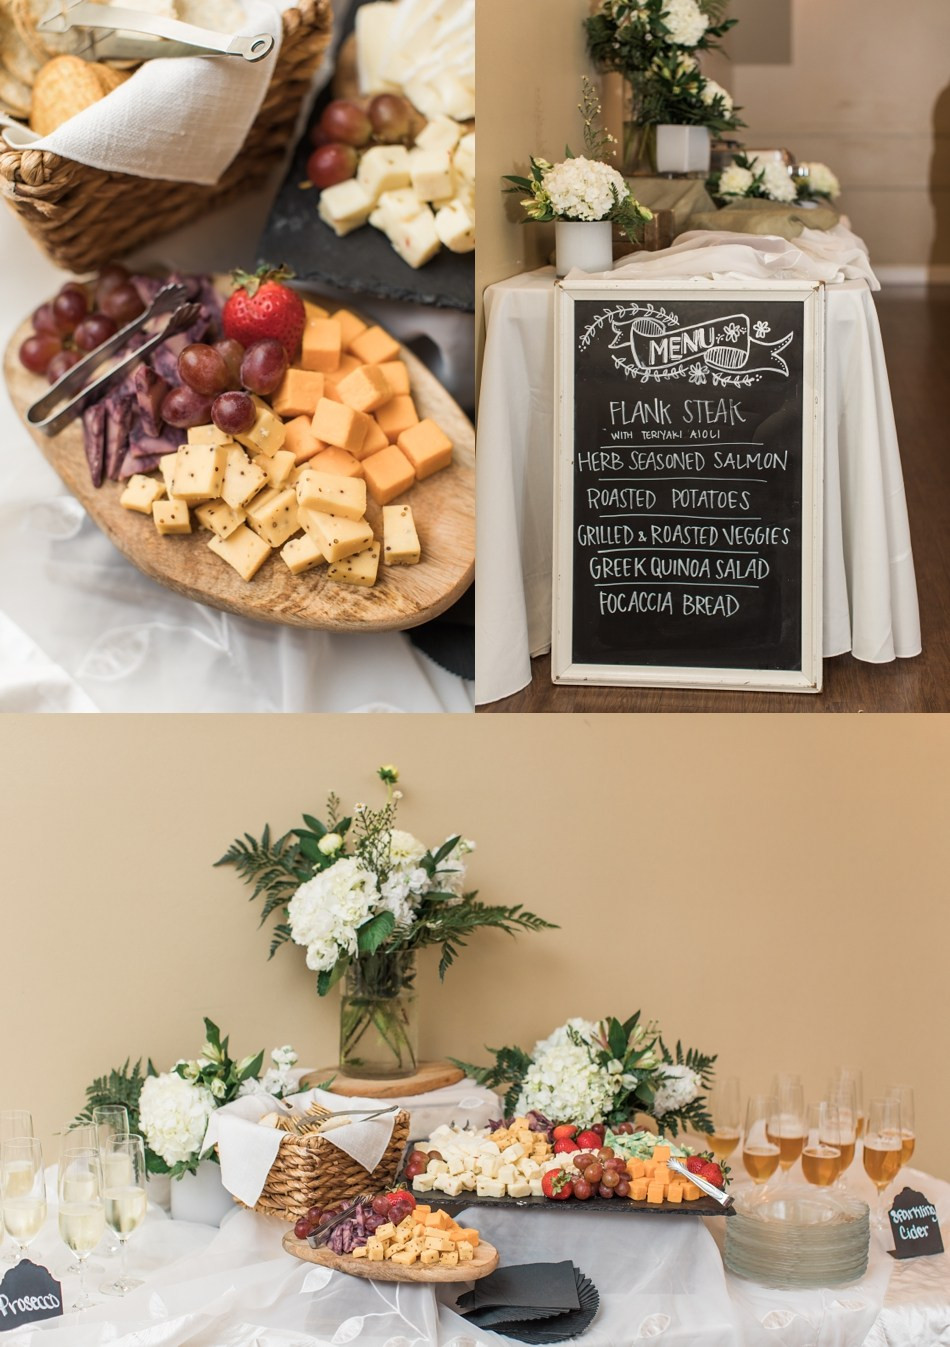 Wedding catering by Alexa's Cafe & Catering, a Snohomish wedding caterer. | www.mysnohomishwedding.com